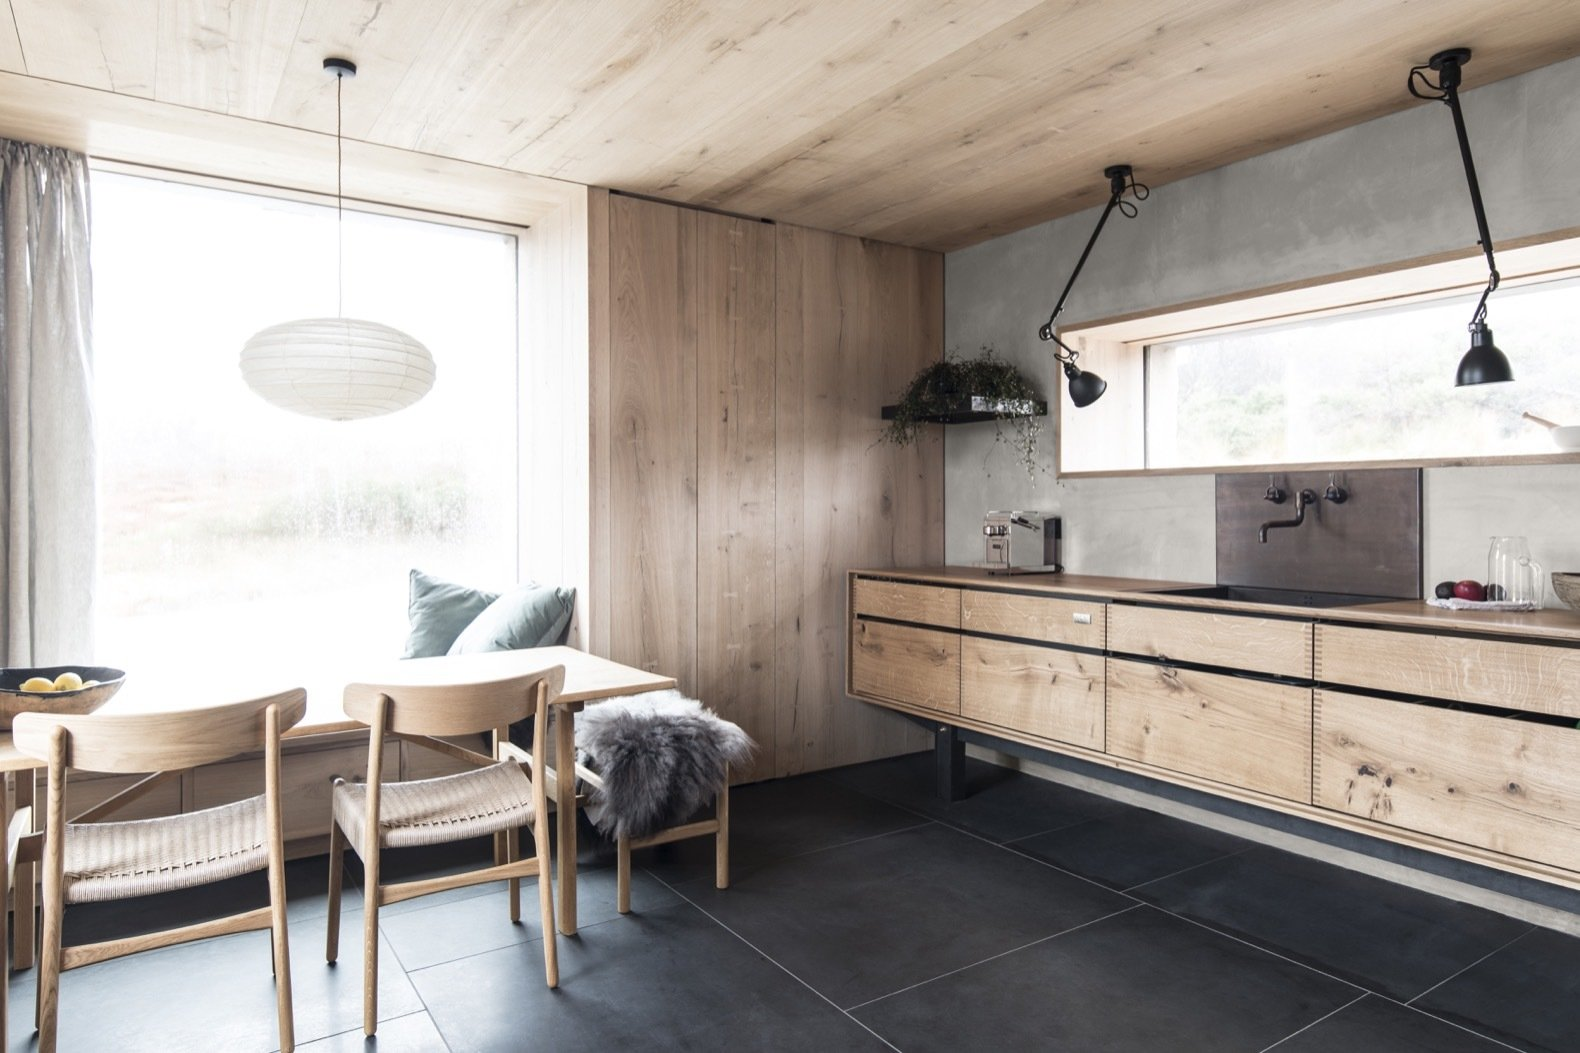 Kitchen, Wood Cabinet, Cooktops, Wood Counter, and Ceiling Lighting A muted and natural material palette of stone, timber, metal, and glass define the interiors. The floors are locally-mined Caithness stone, installed with radiant underfloor heating.  Best Photos from Cozy Up in a Nordic-Inspired Retreat Reborn From Ruins